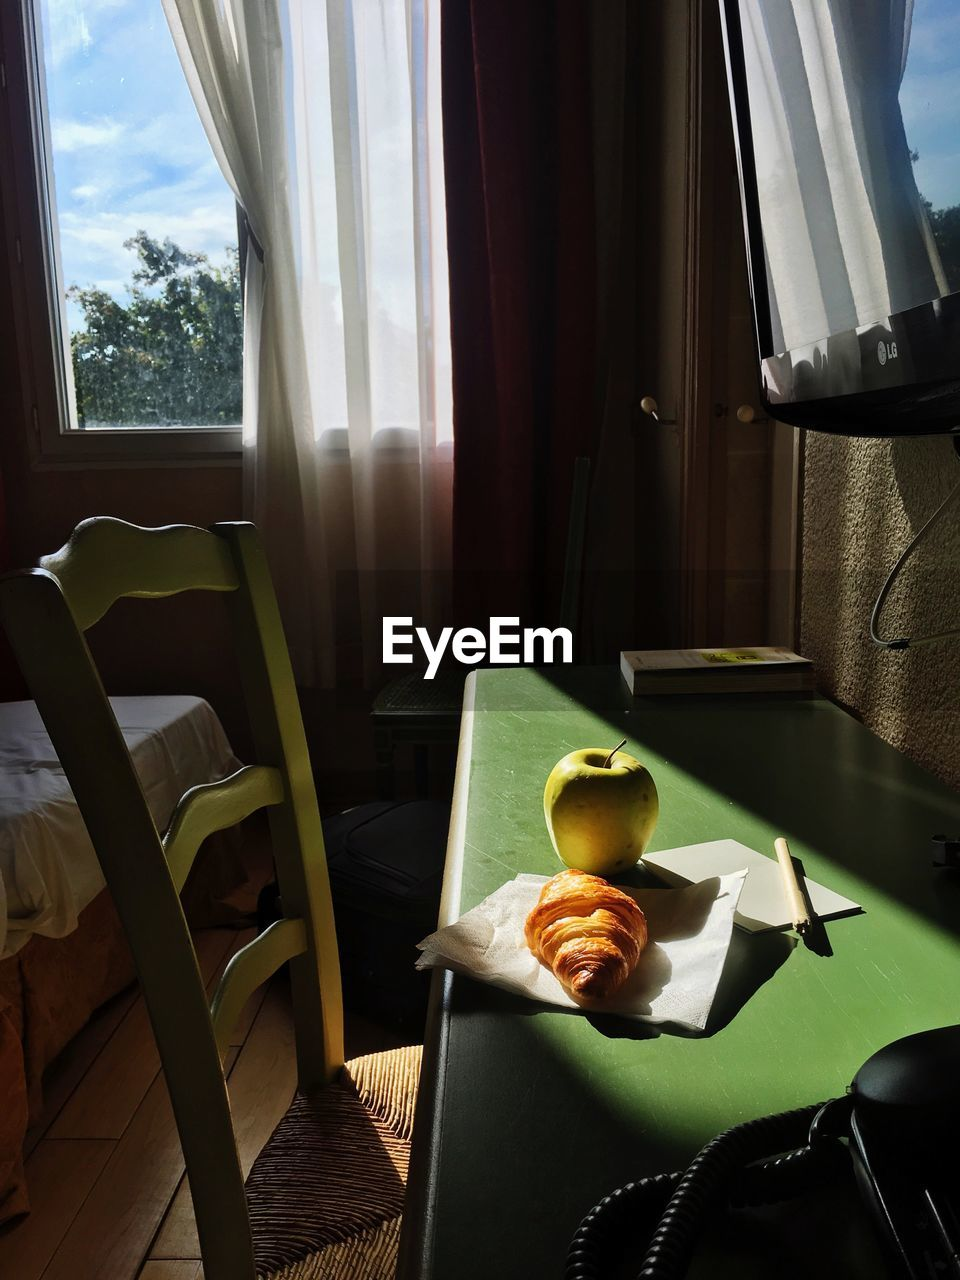 seat, chair, window, table, indoors, curtain, home interior, absence, furniture, day, no people, glass - material, transparent, empty, food and drink, sunlight, sofa, nature, pillow, food, coffee table